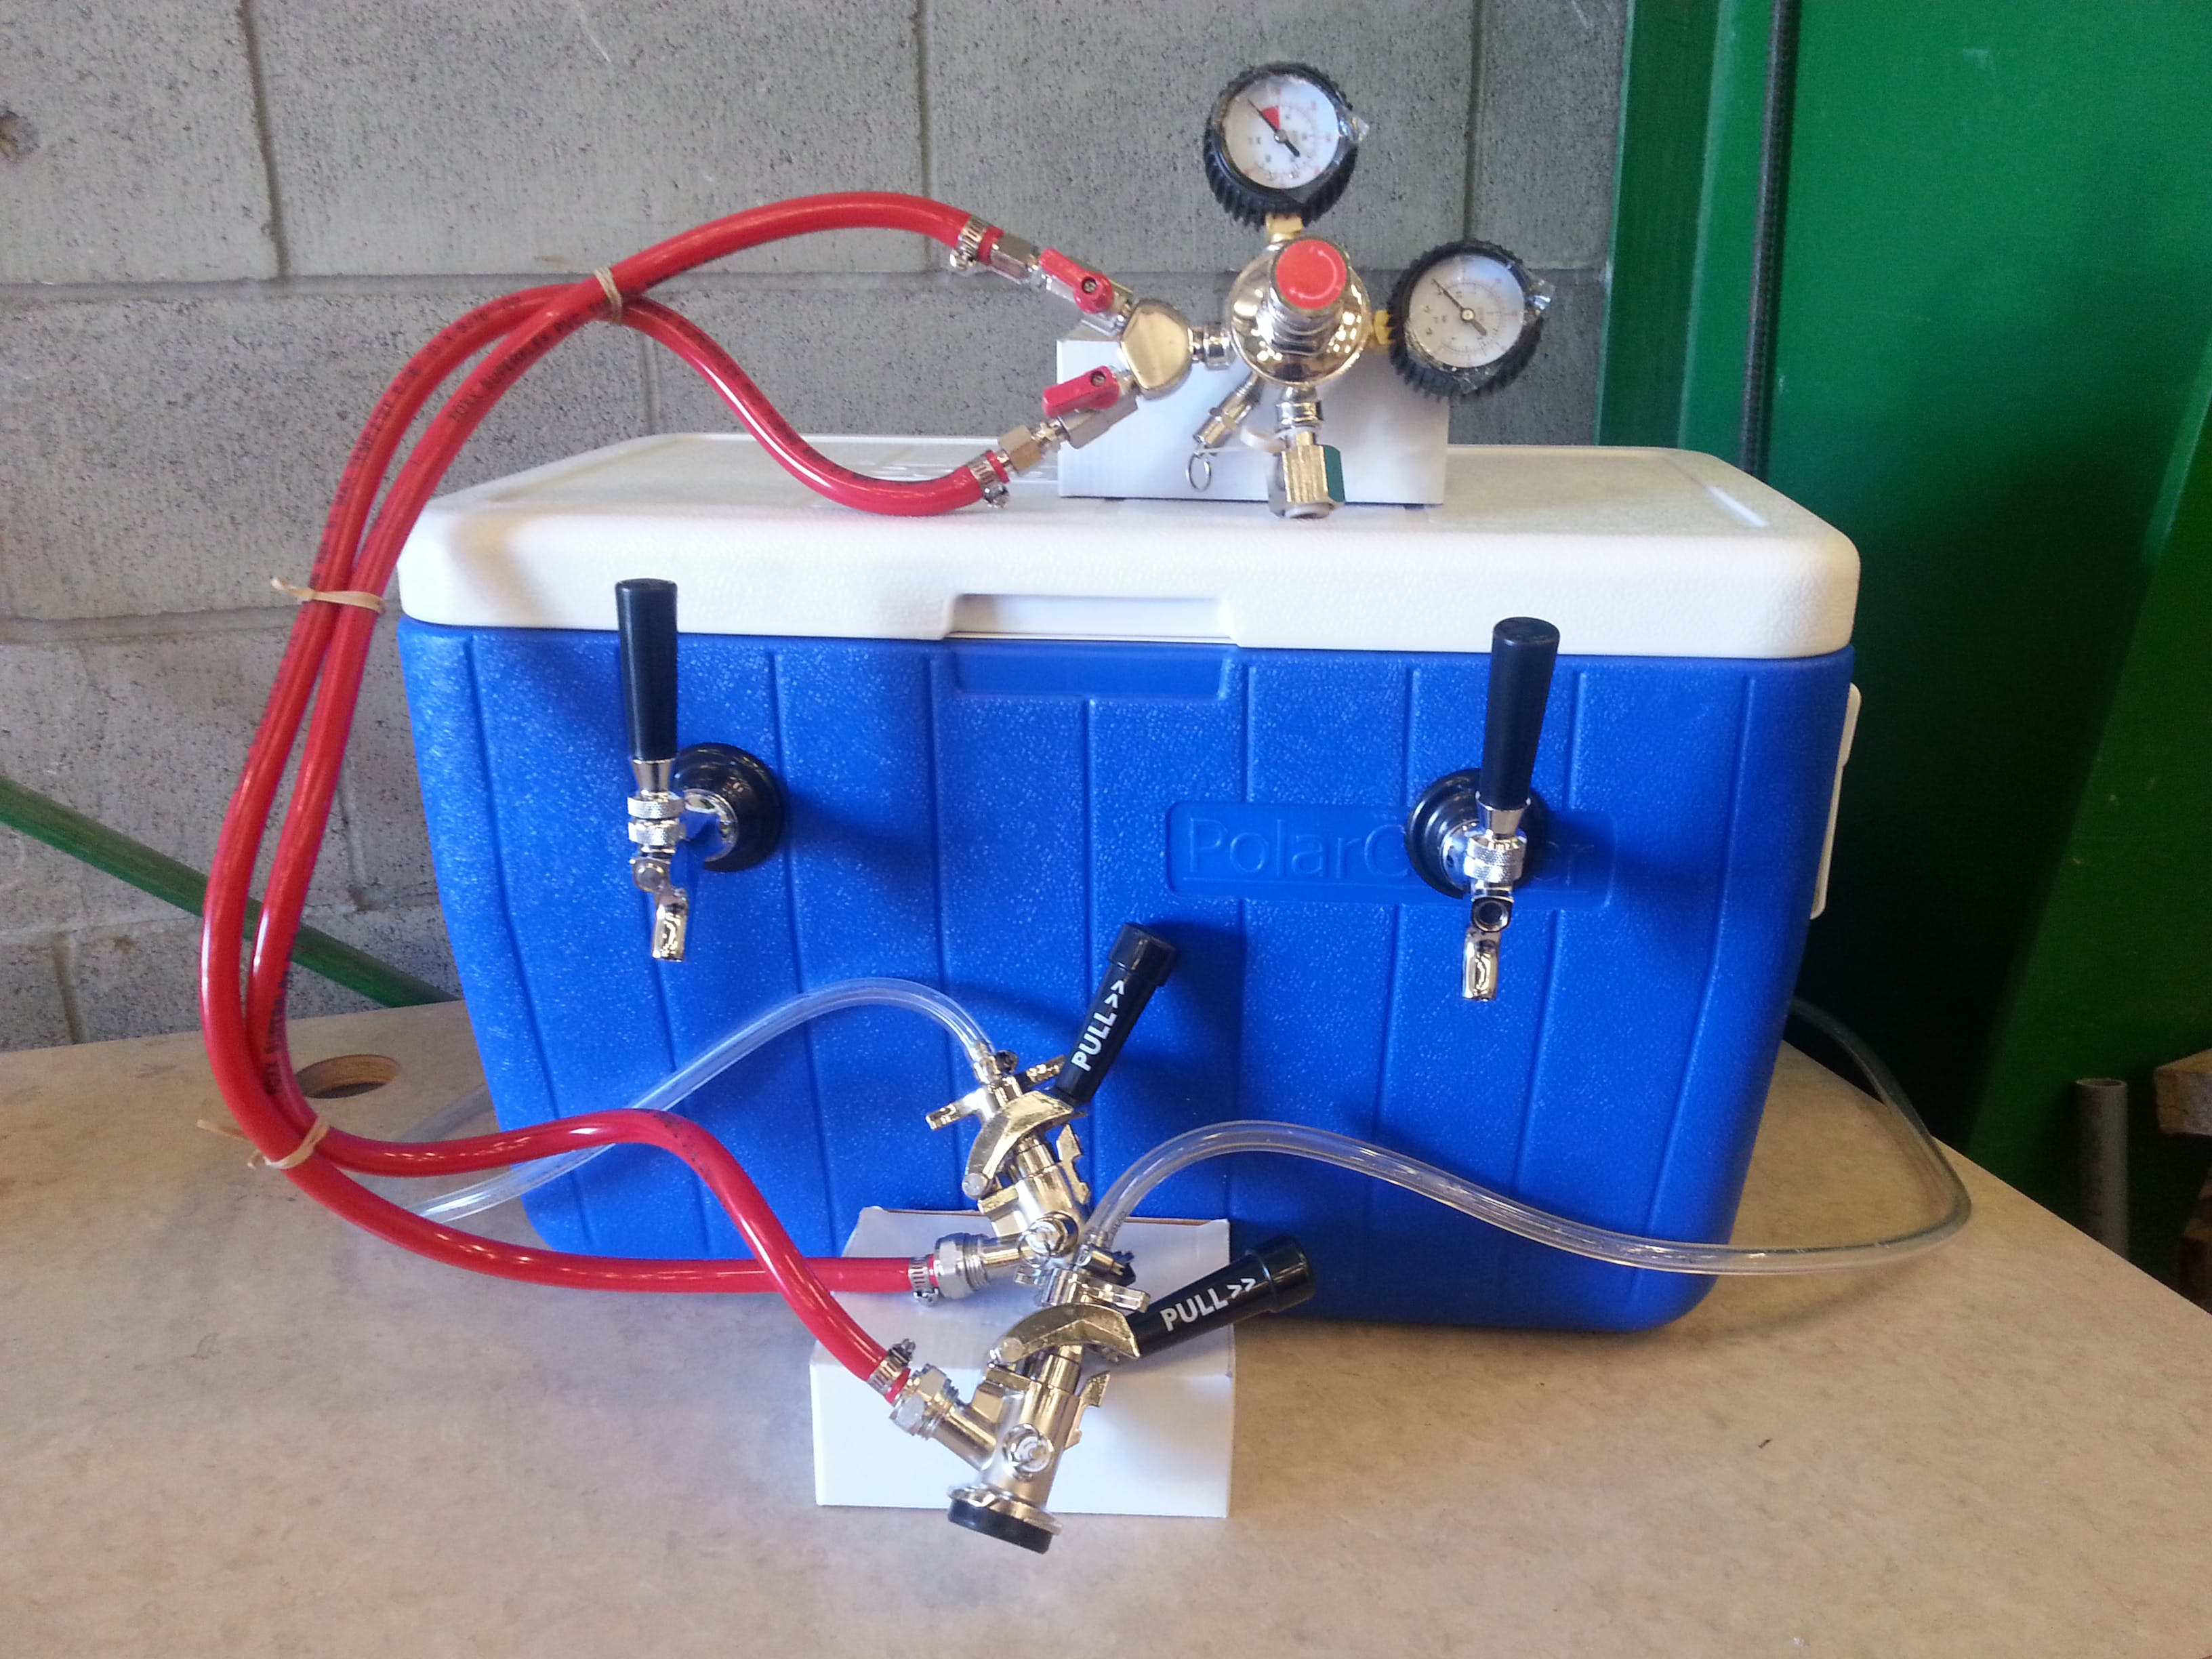 Jockey Box - Double Faucet Keg sold by Gopher Kegs